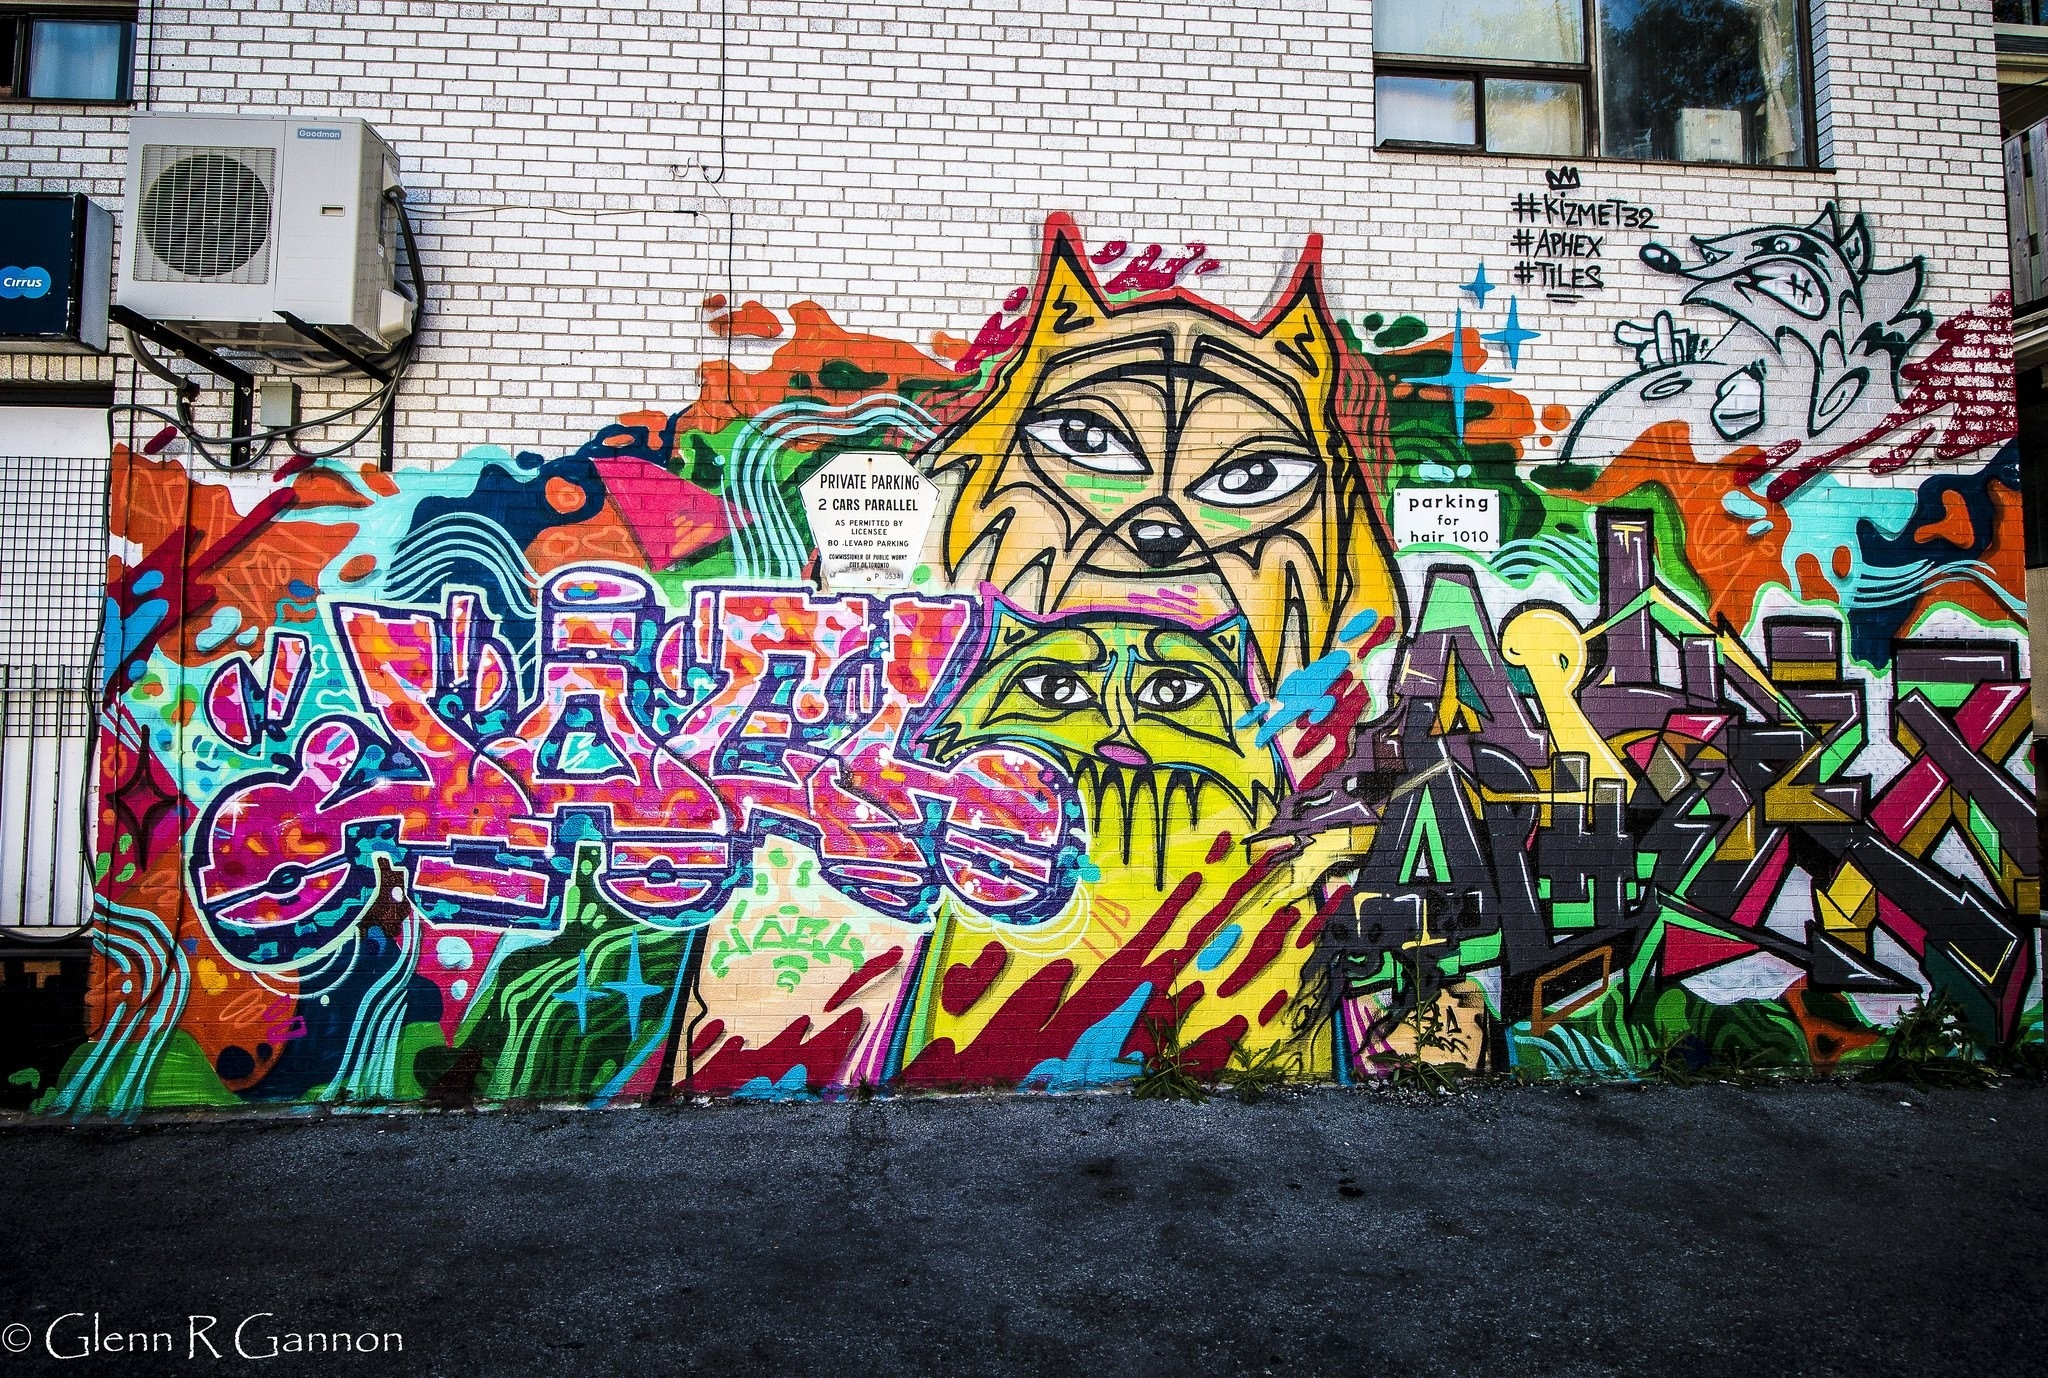 Street Graffiti - Google Search | Sports | Pinterest | Graffiti in Street Wall Art Wallpaper 29969